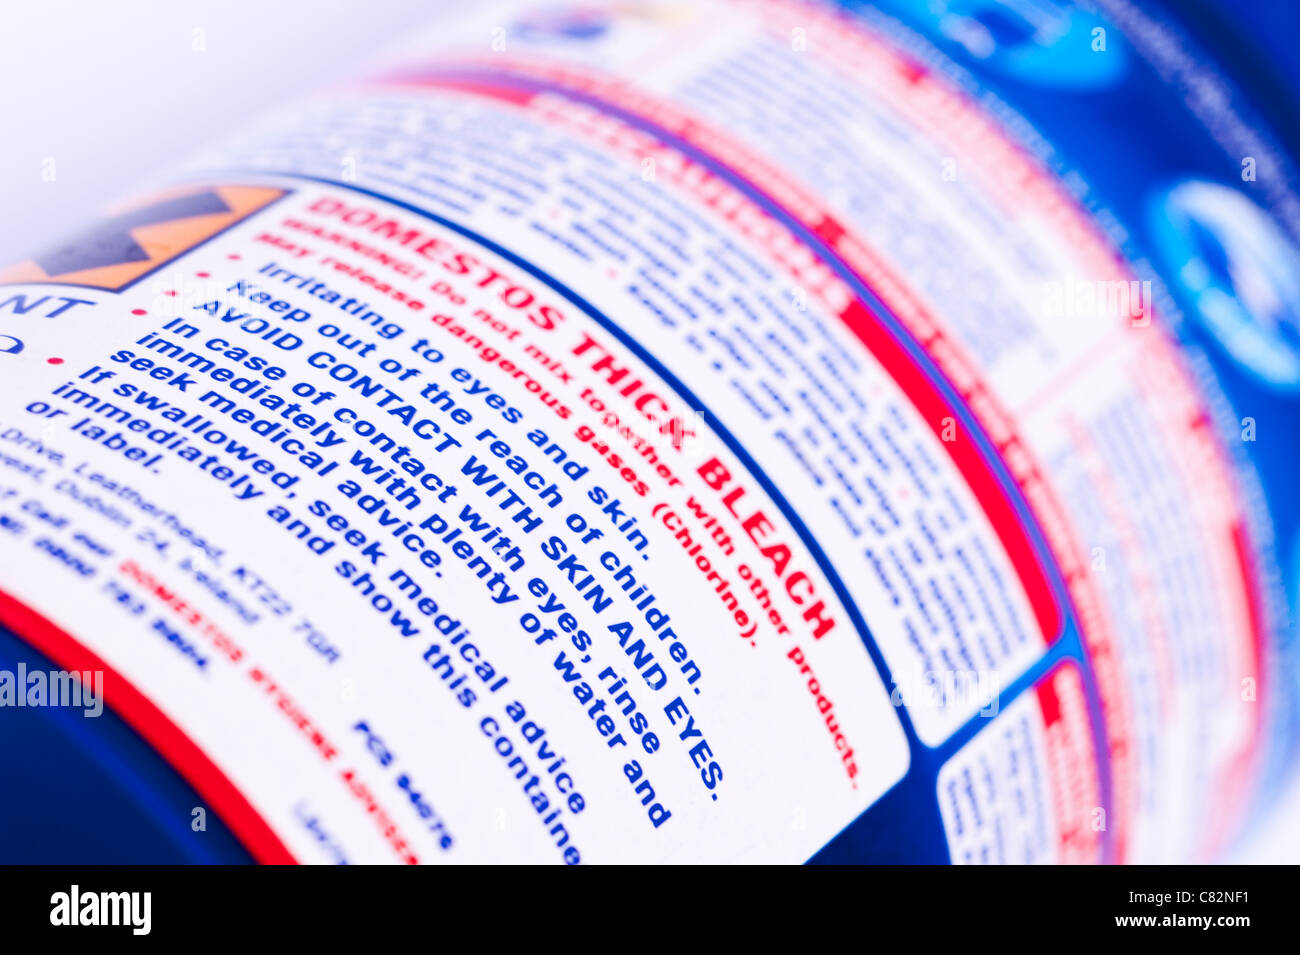 Warning sign on a household bleach product bottle stock photo warning sign on a household bleach product bottle biocorpaavc